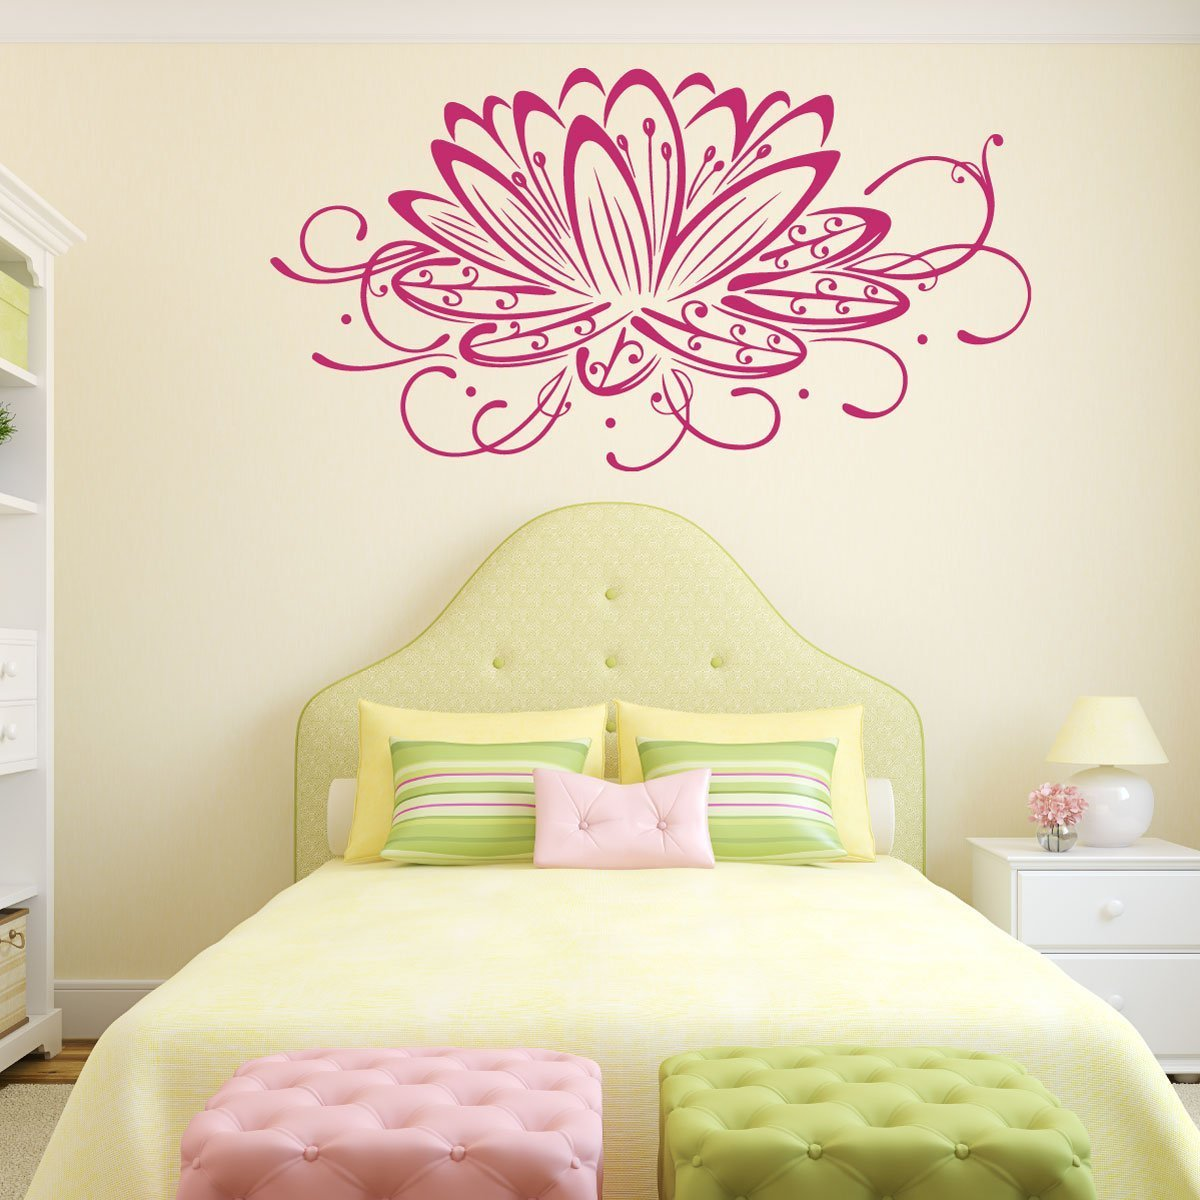 Lotus Flower Wall Decal - Flower Decals - CustomVinylDecor.com